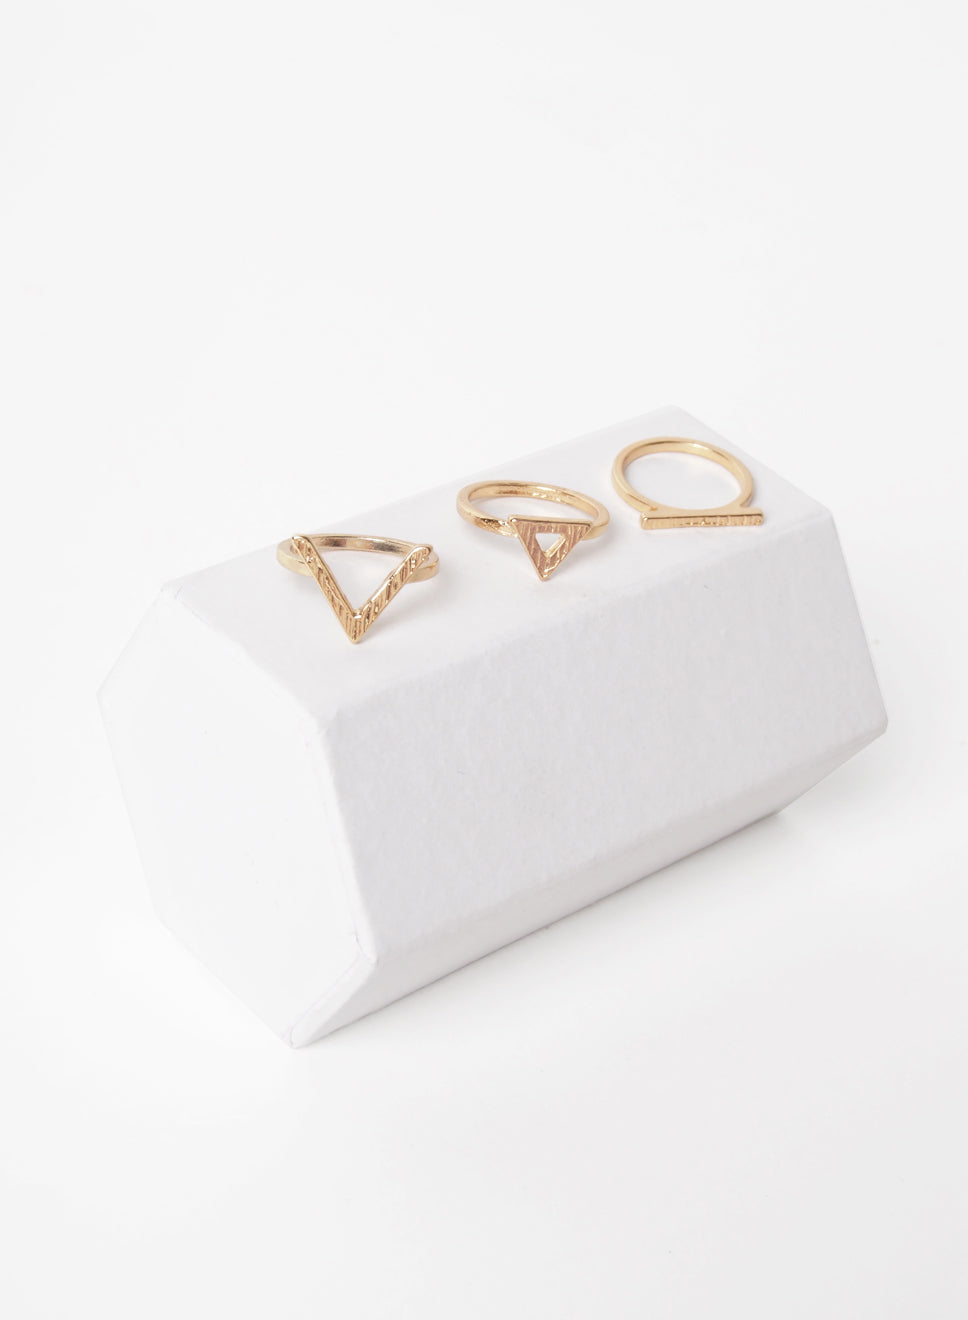 DELIA 3 GOLD RINGS SET at $ 10.00 only sold at And Well Dressed Online Fashion Store Singapore